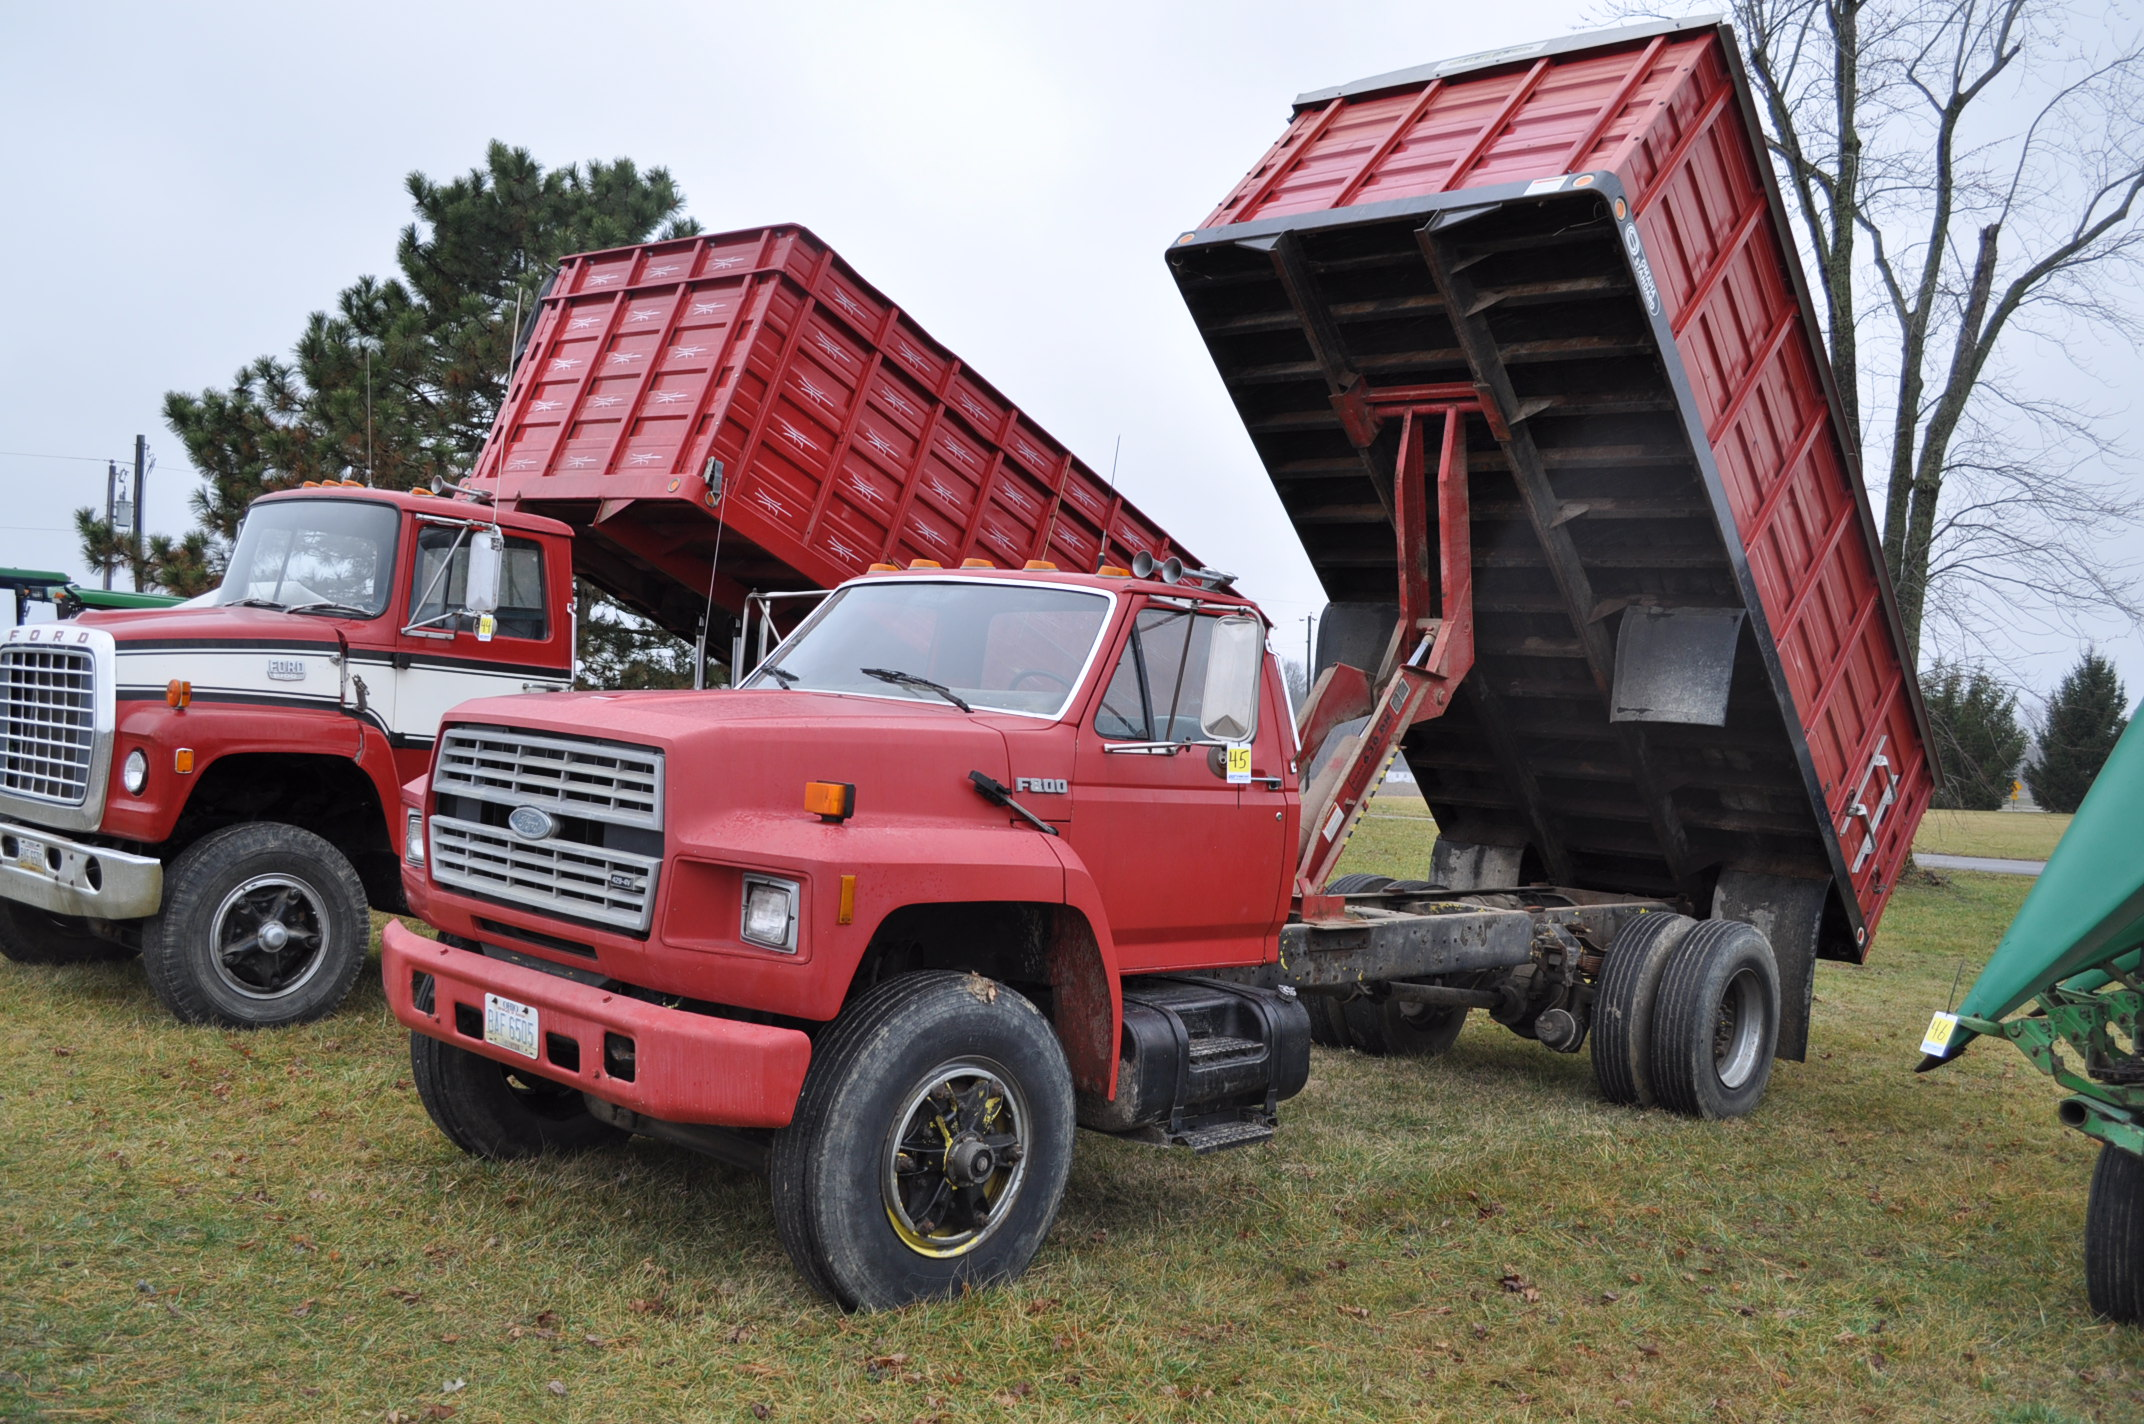 1988 Ford F800 grain truck, single axle, 427 V-8, auto, 11 R 22.5 tires, 16' Omaha Standard bed,